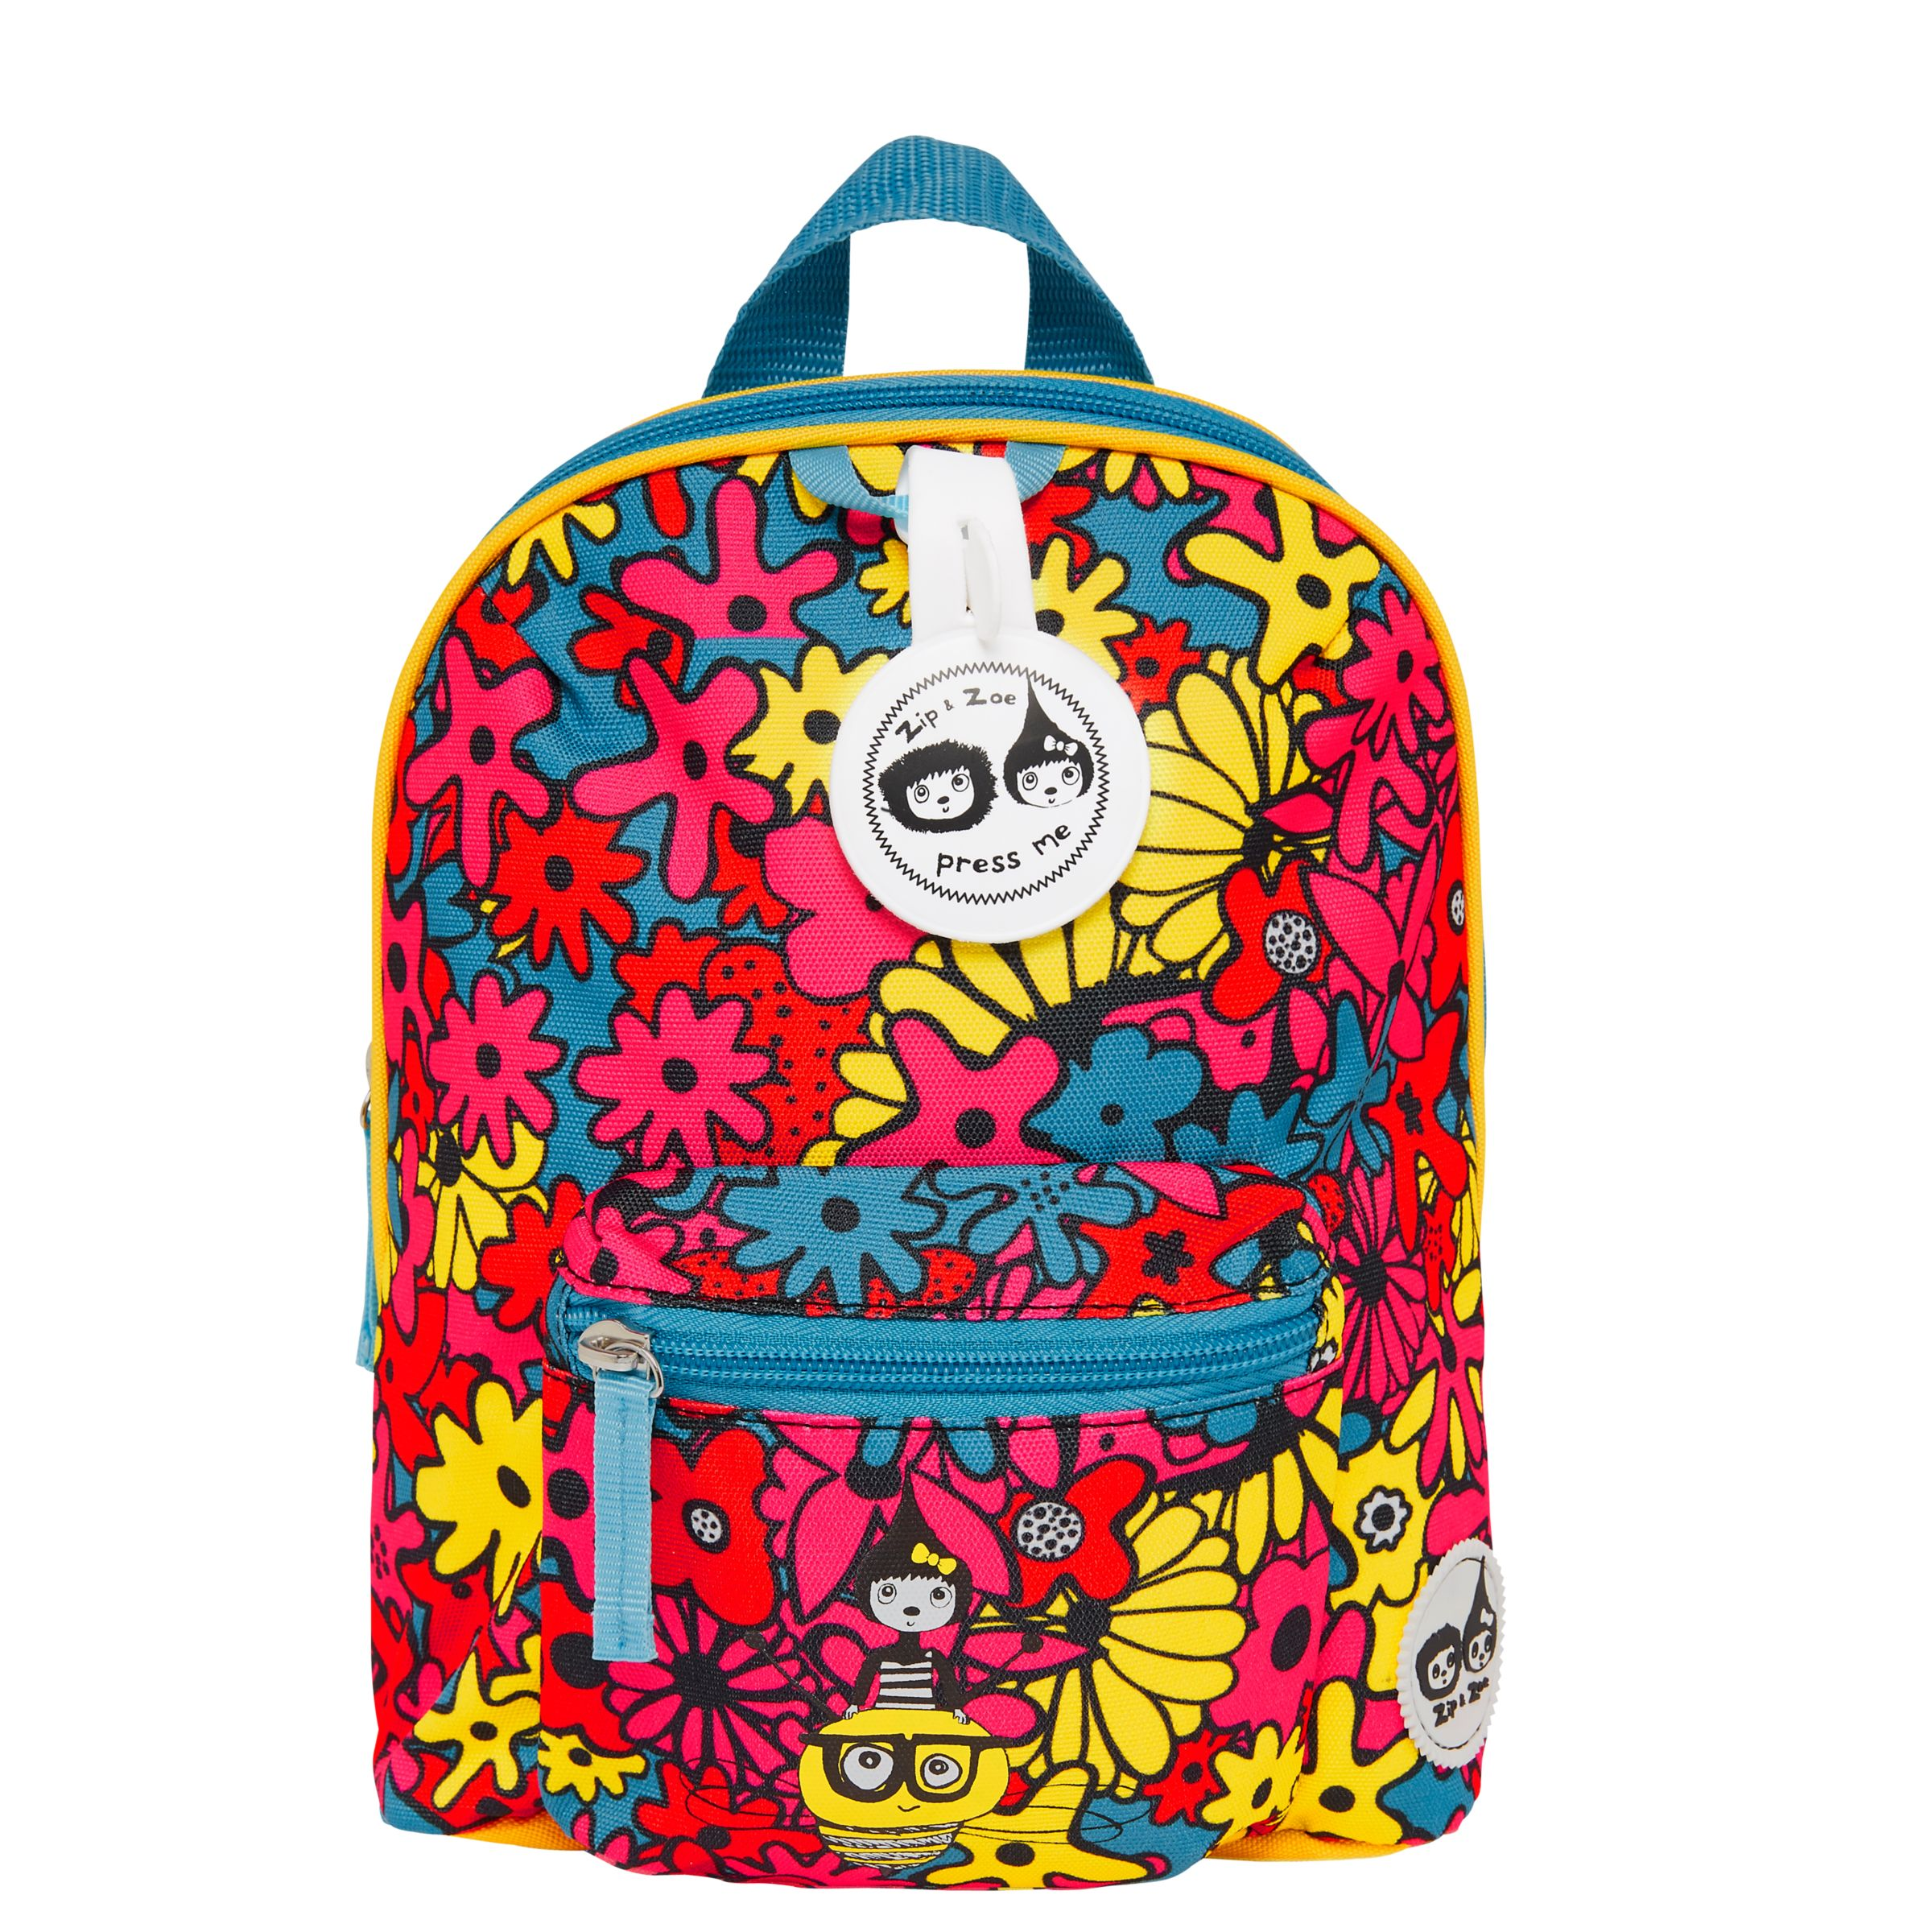 Babymel Babymel Zip & Zoe Mini Backpack, Reins and Safety Harness, Floral Brights